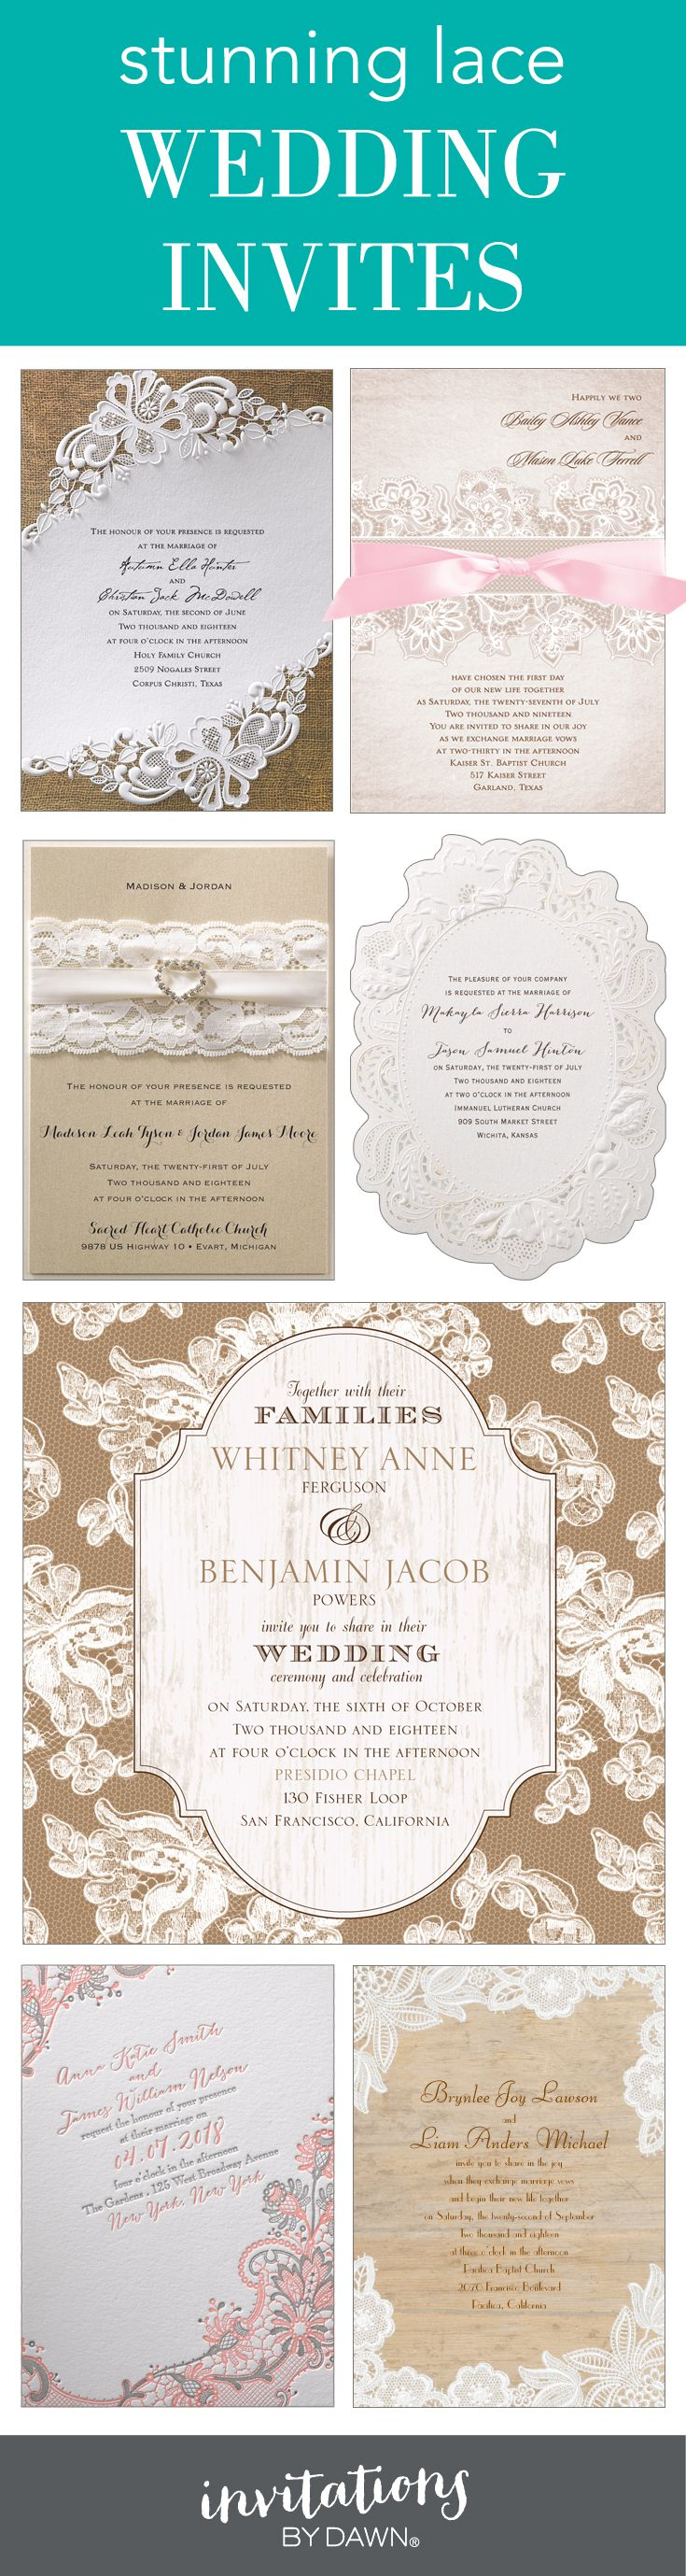 20 Best Wedding Papery Images On Pinterest Invitations Wedding